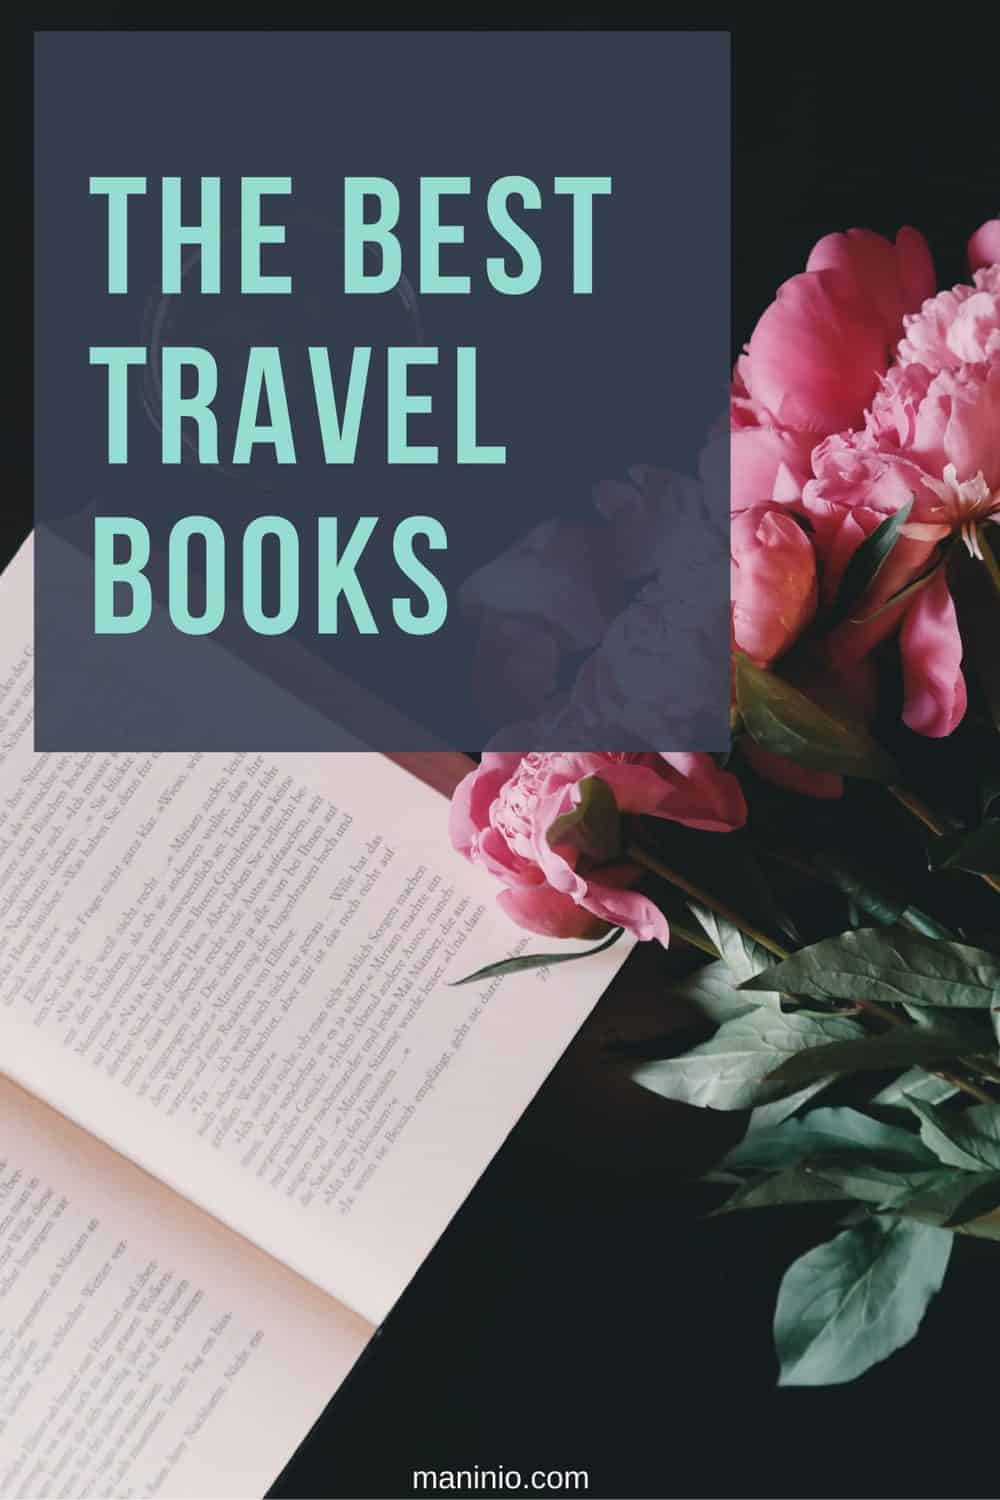 The best Travel books to feed your wanderlust. maninio.com #travelbooks #bookslove